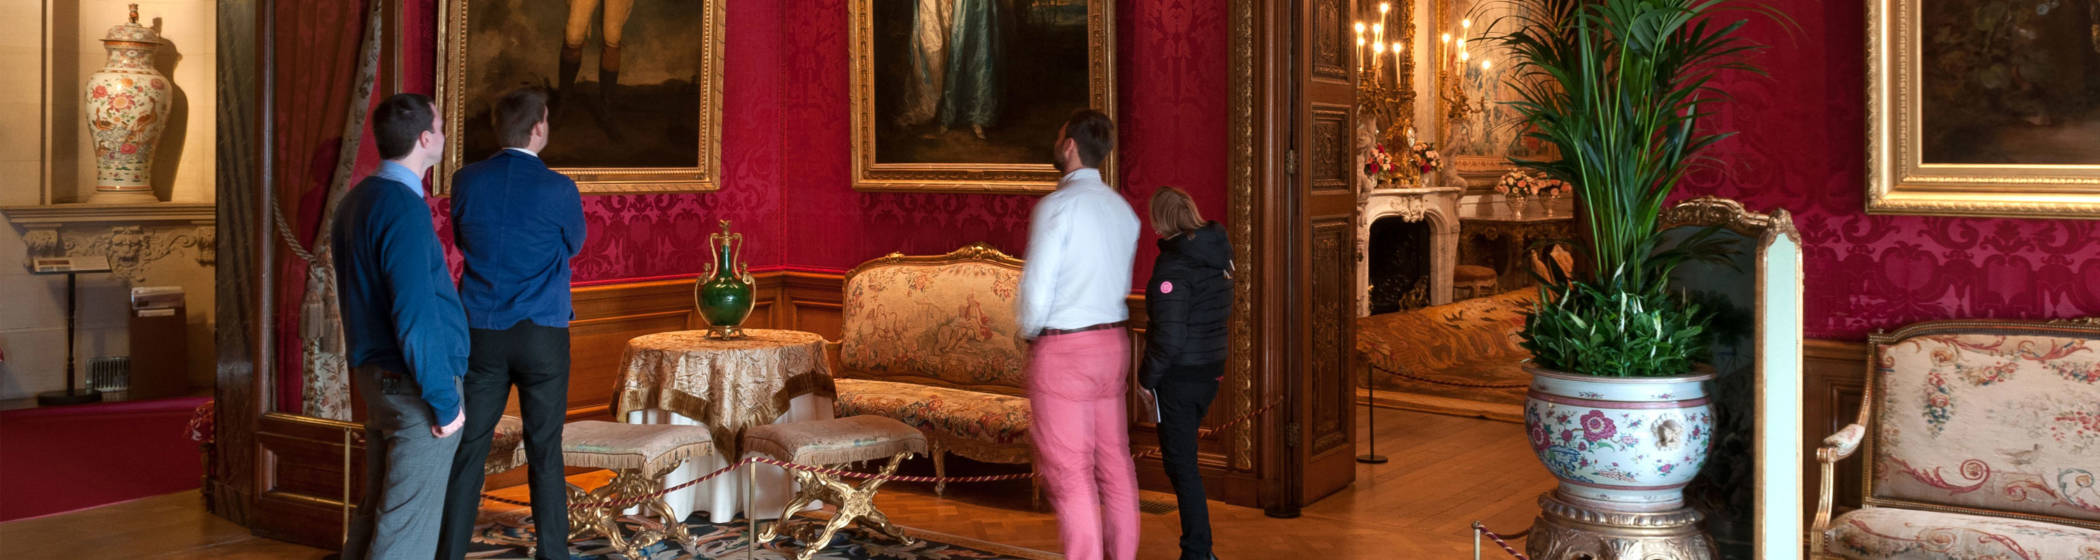 Visitors in the Red Drawing Room